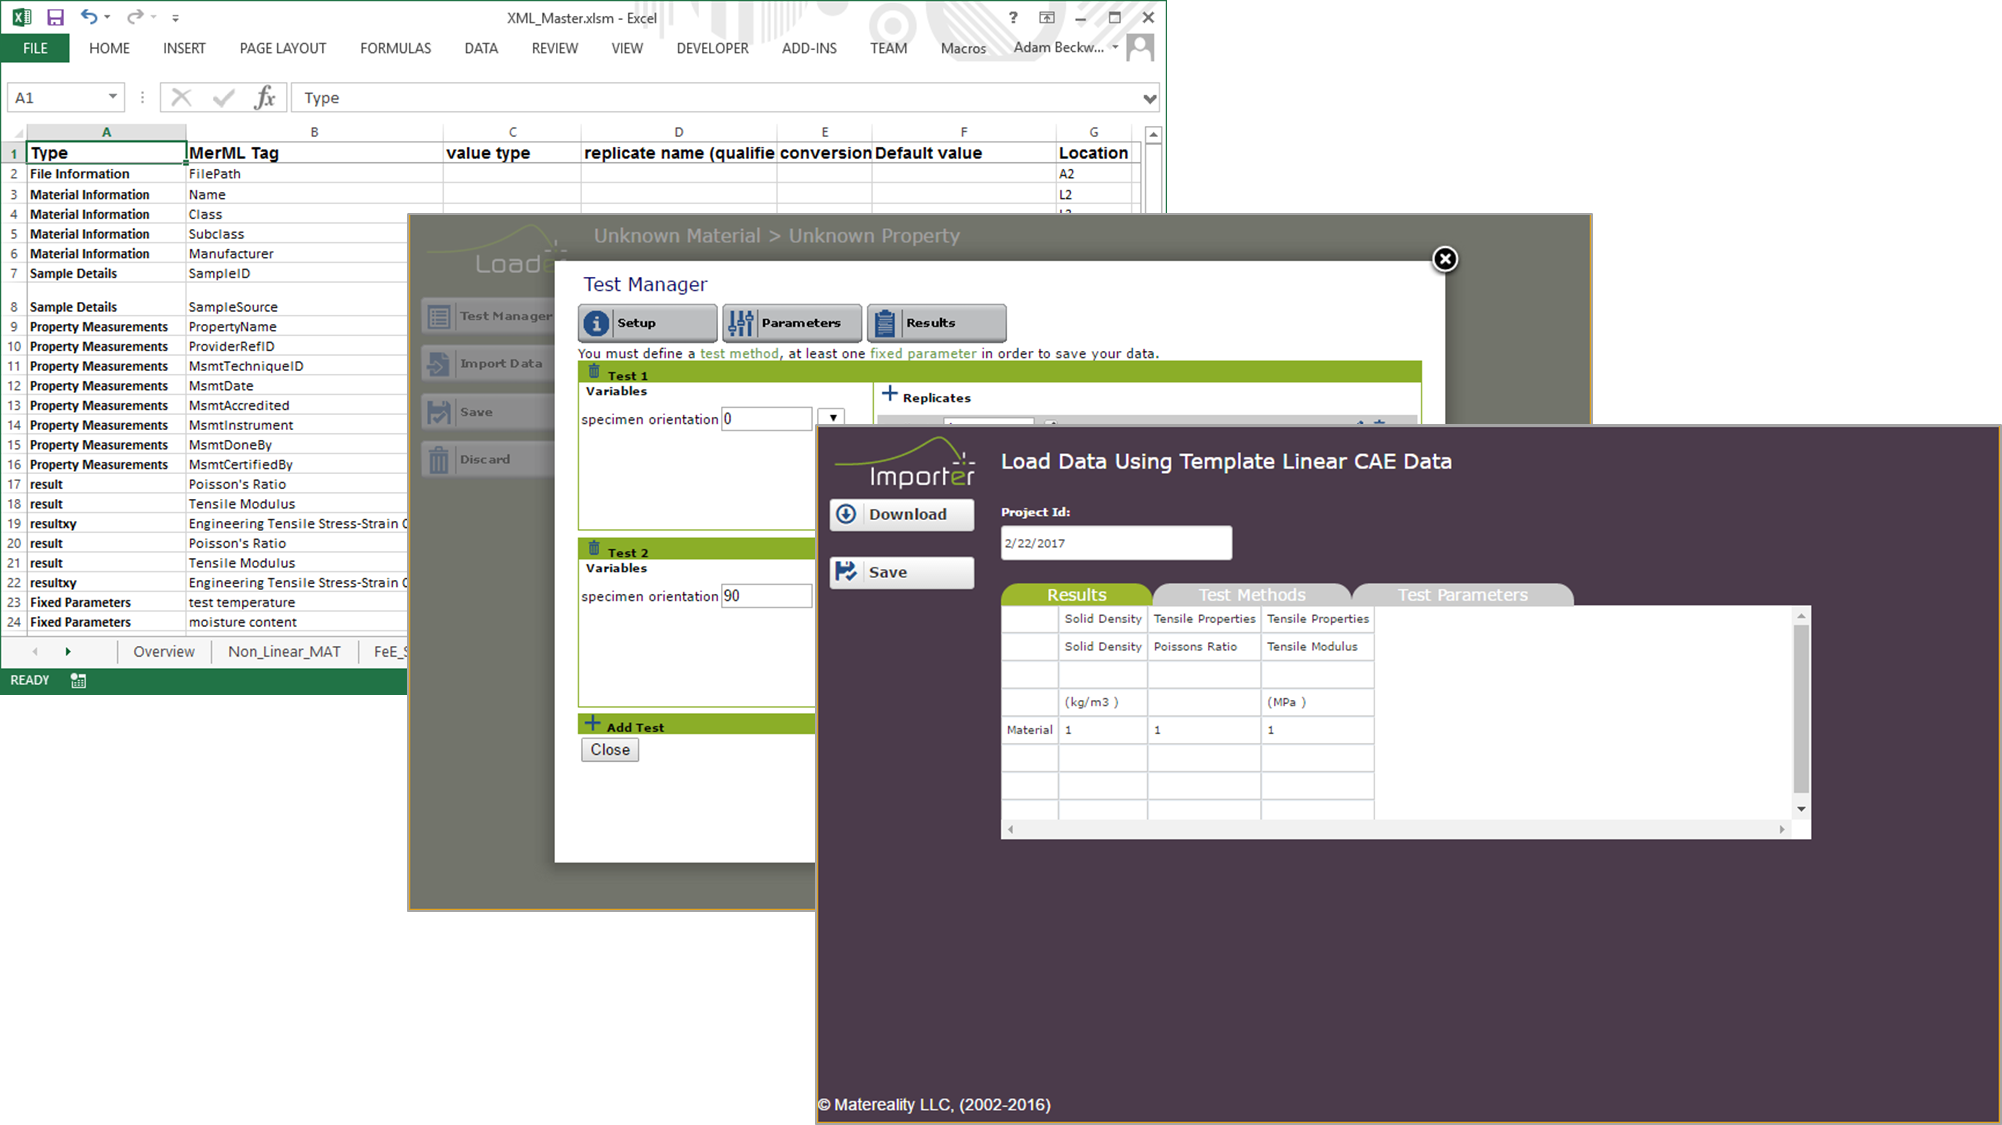 Building a Materials Knowledge Core for Your Company with Workgroup Material DatabasePro